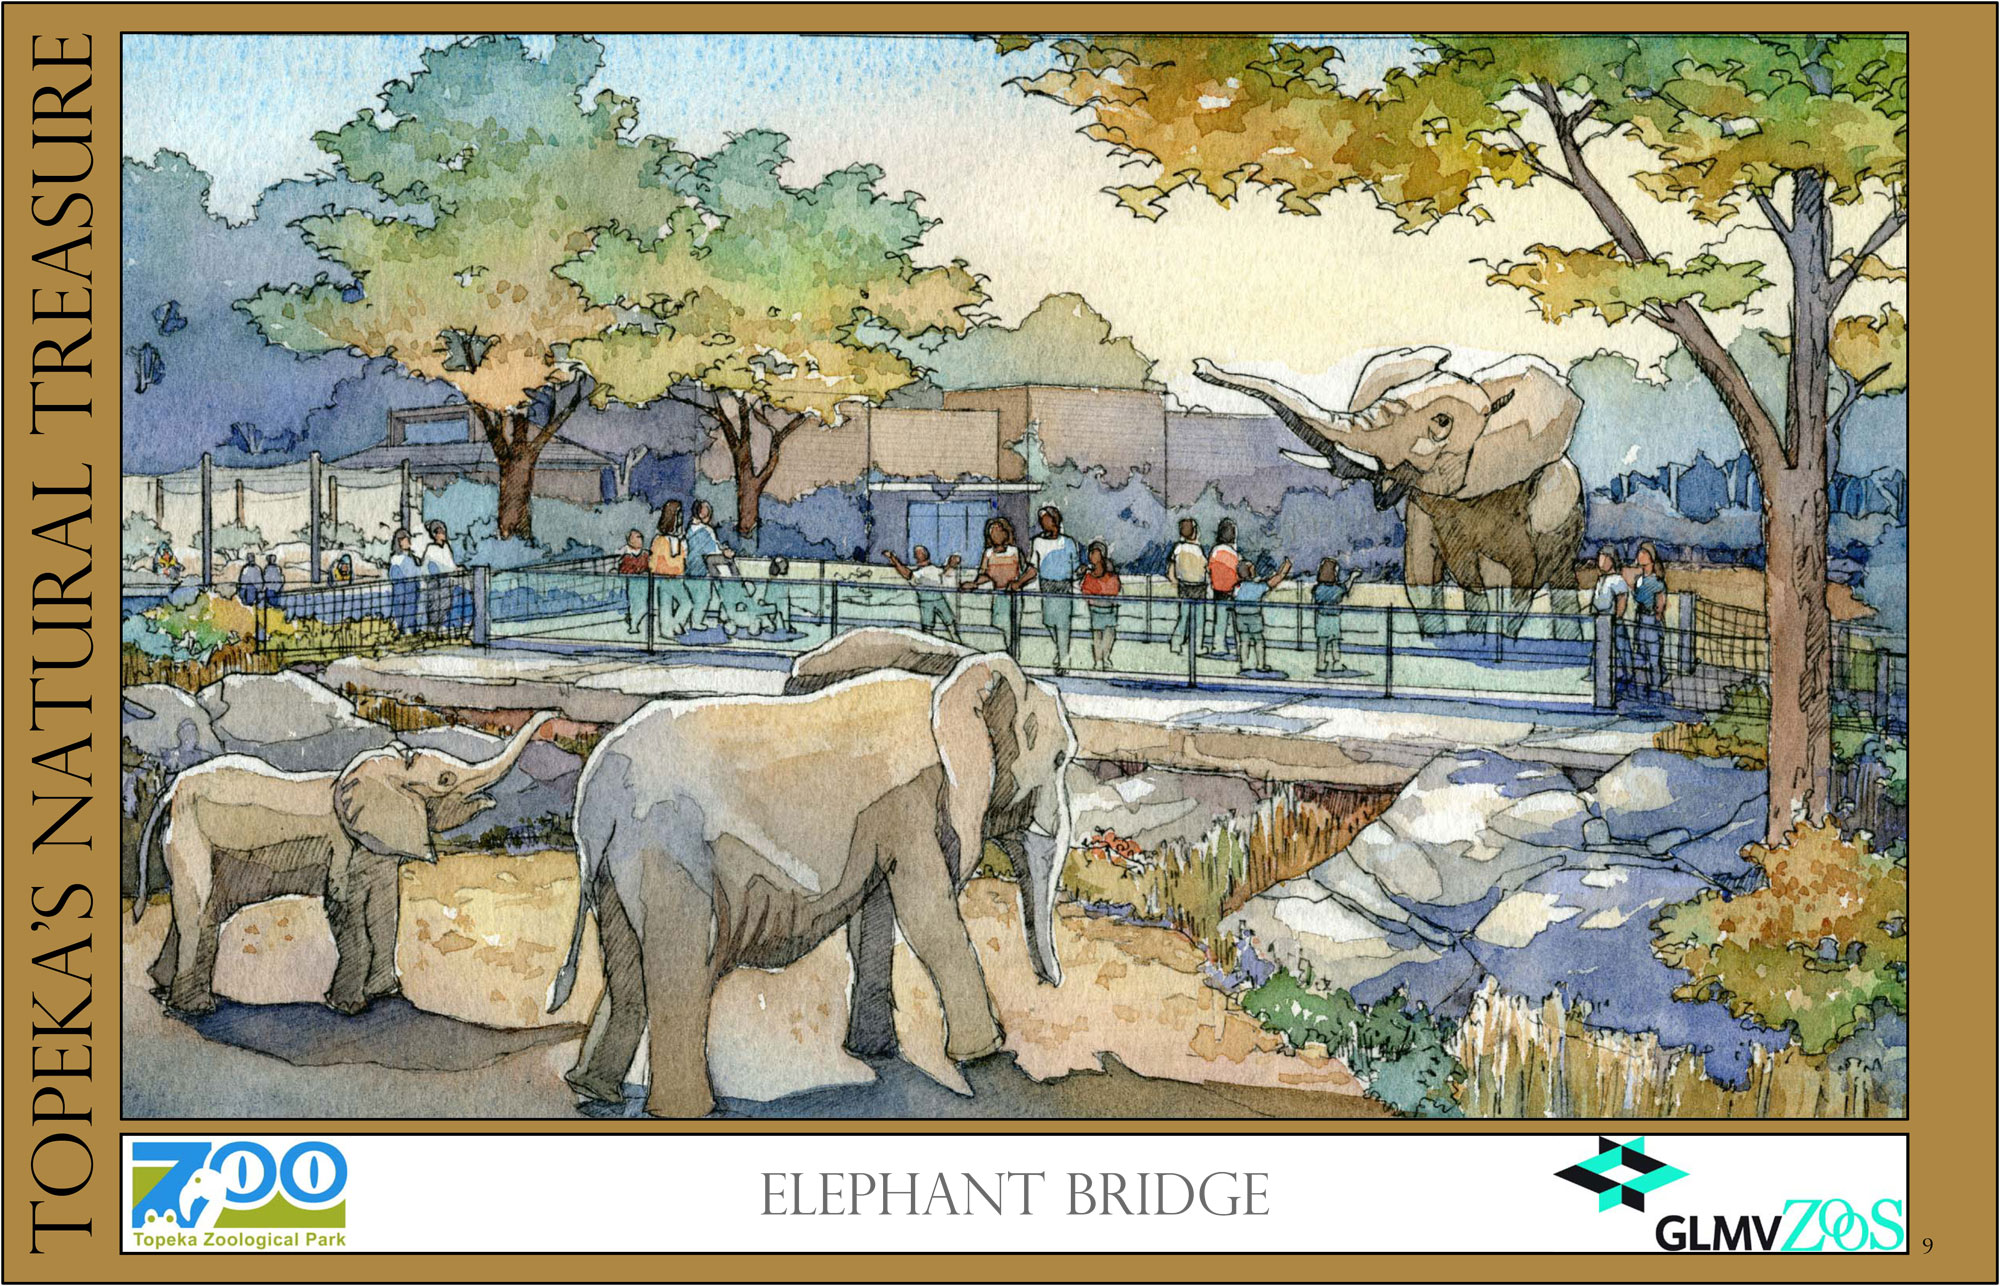 Elephant Bridge